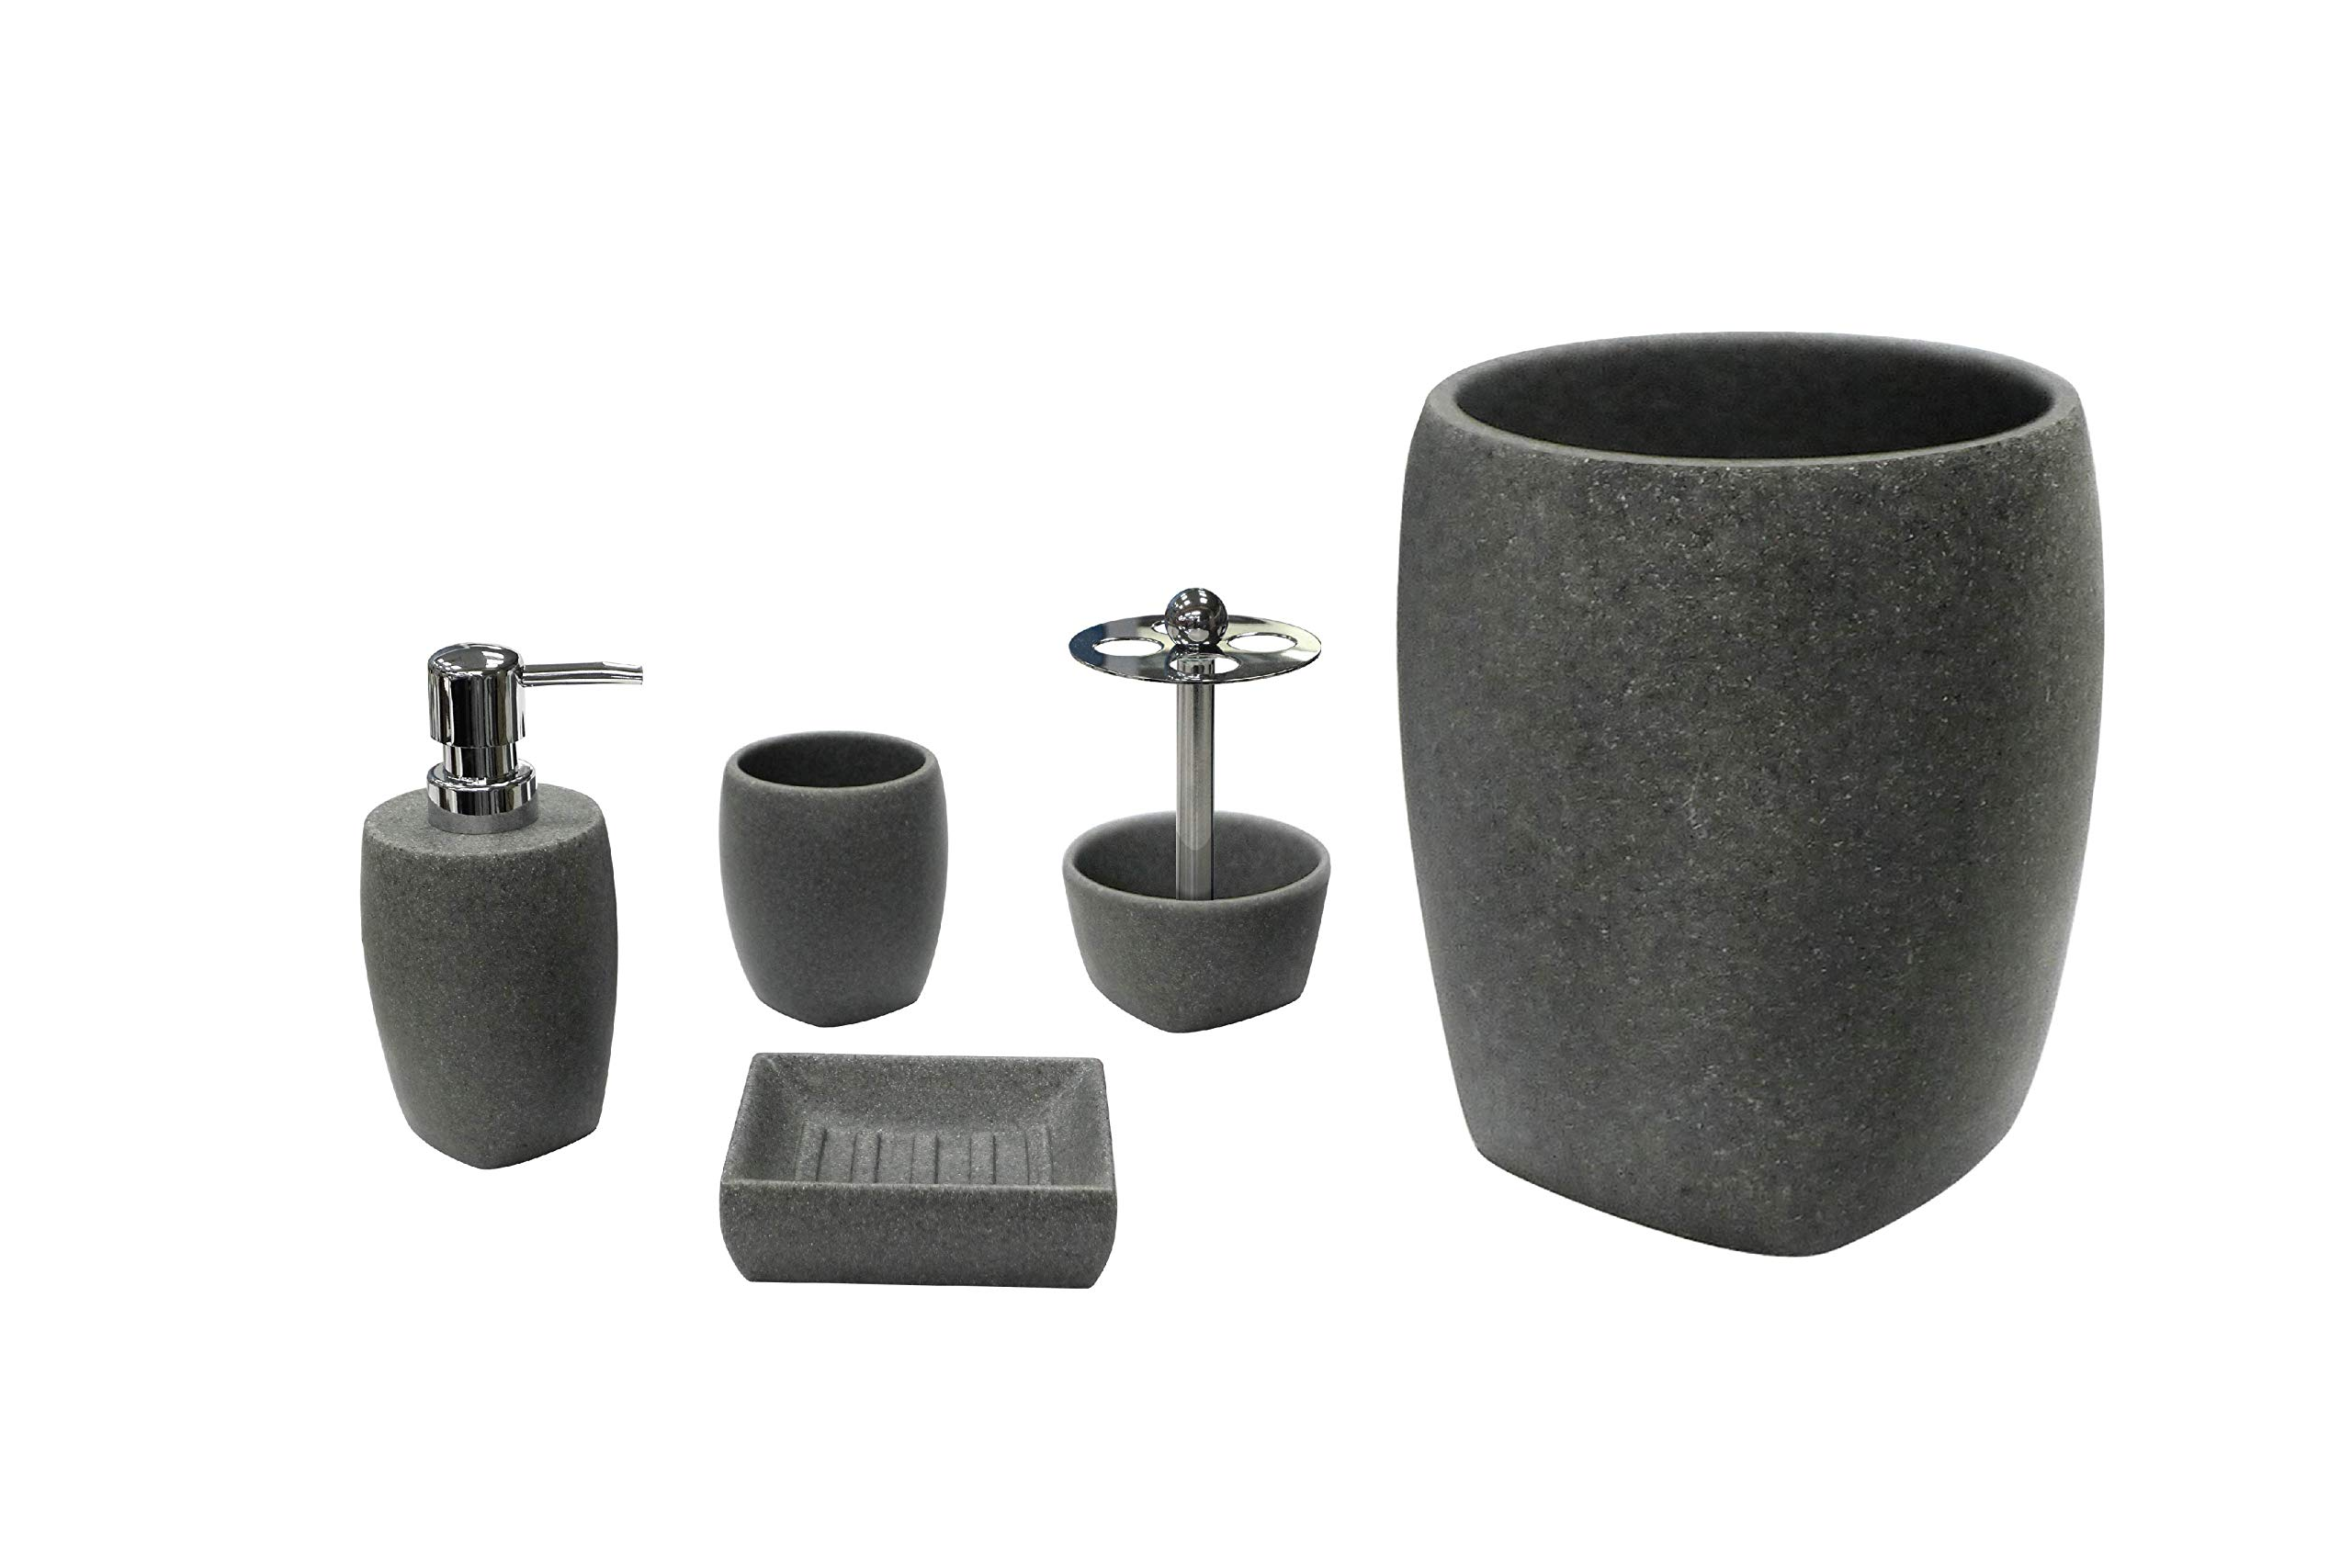 Allure Home Creations Charcoal Stone Tumbler, Grey by Allure Home Creations